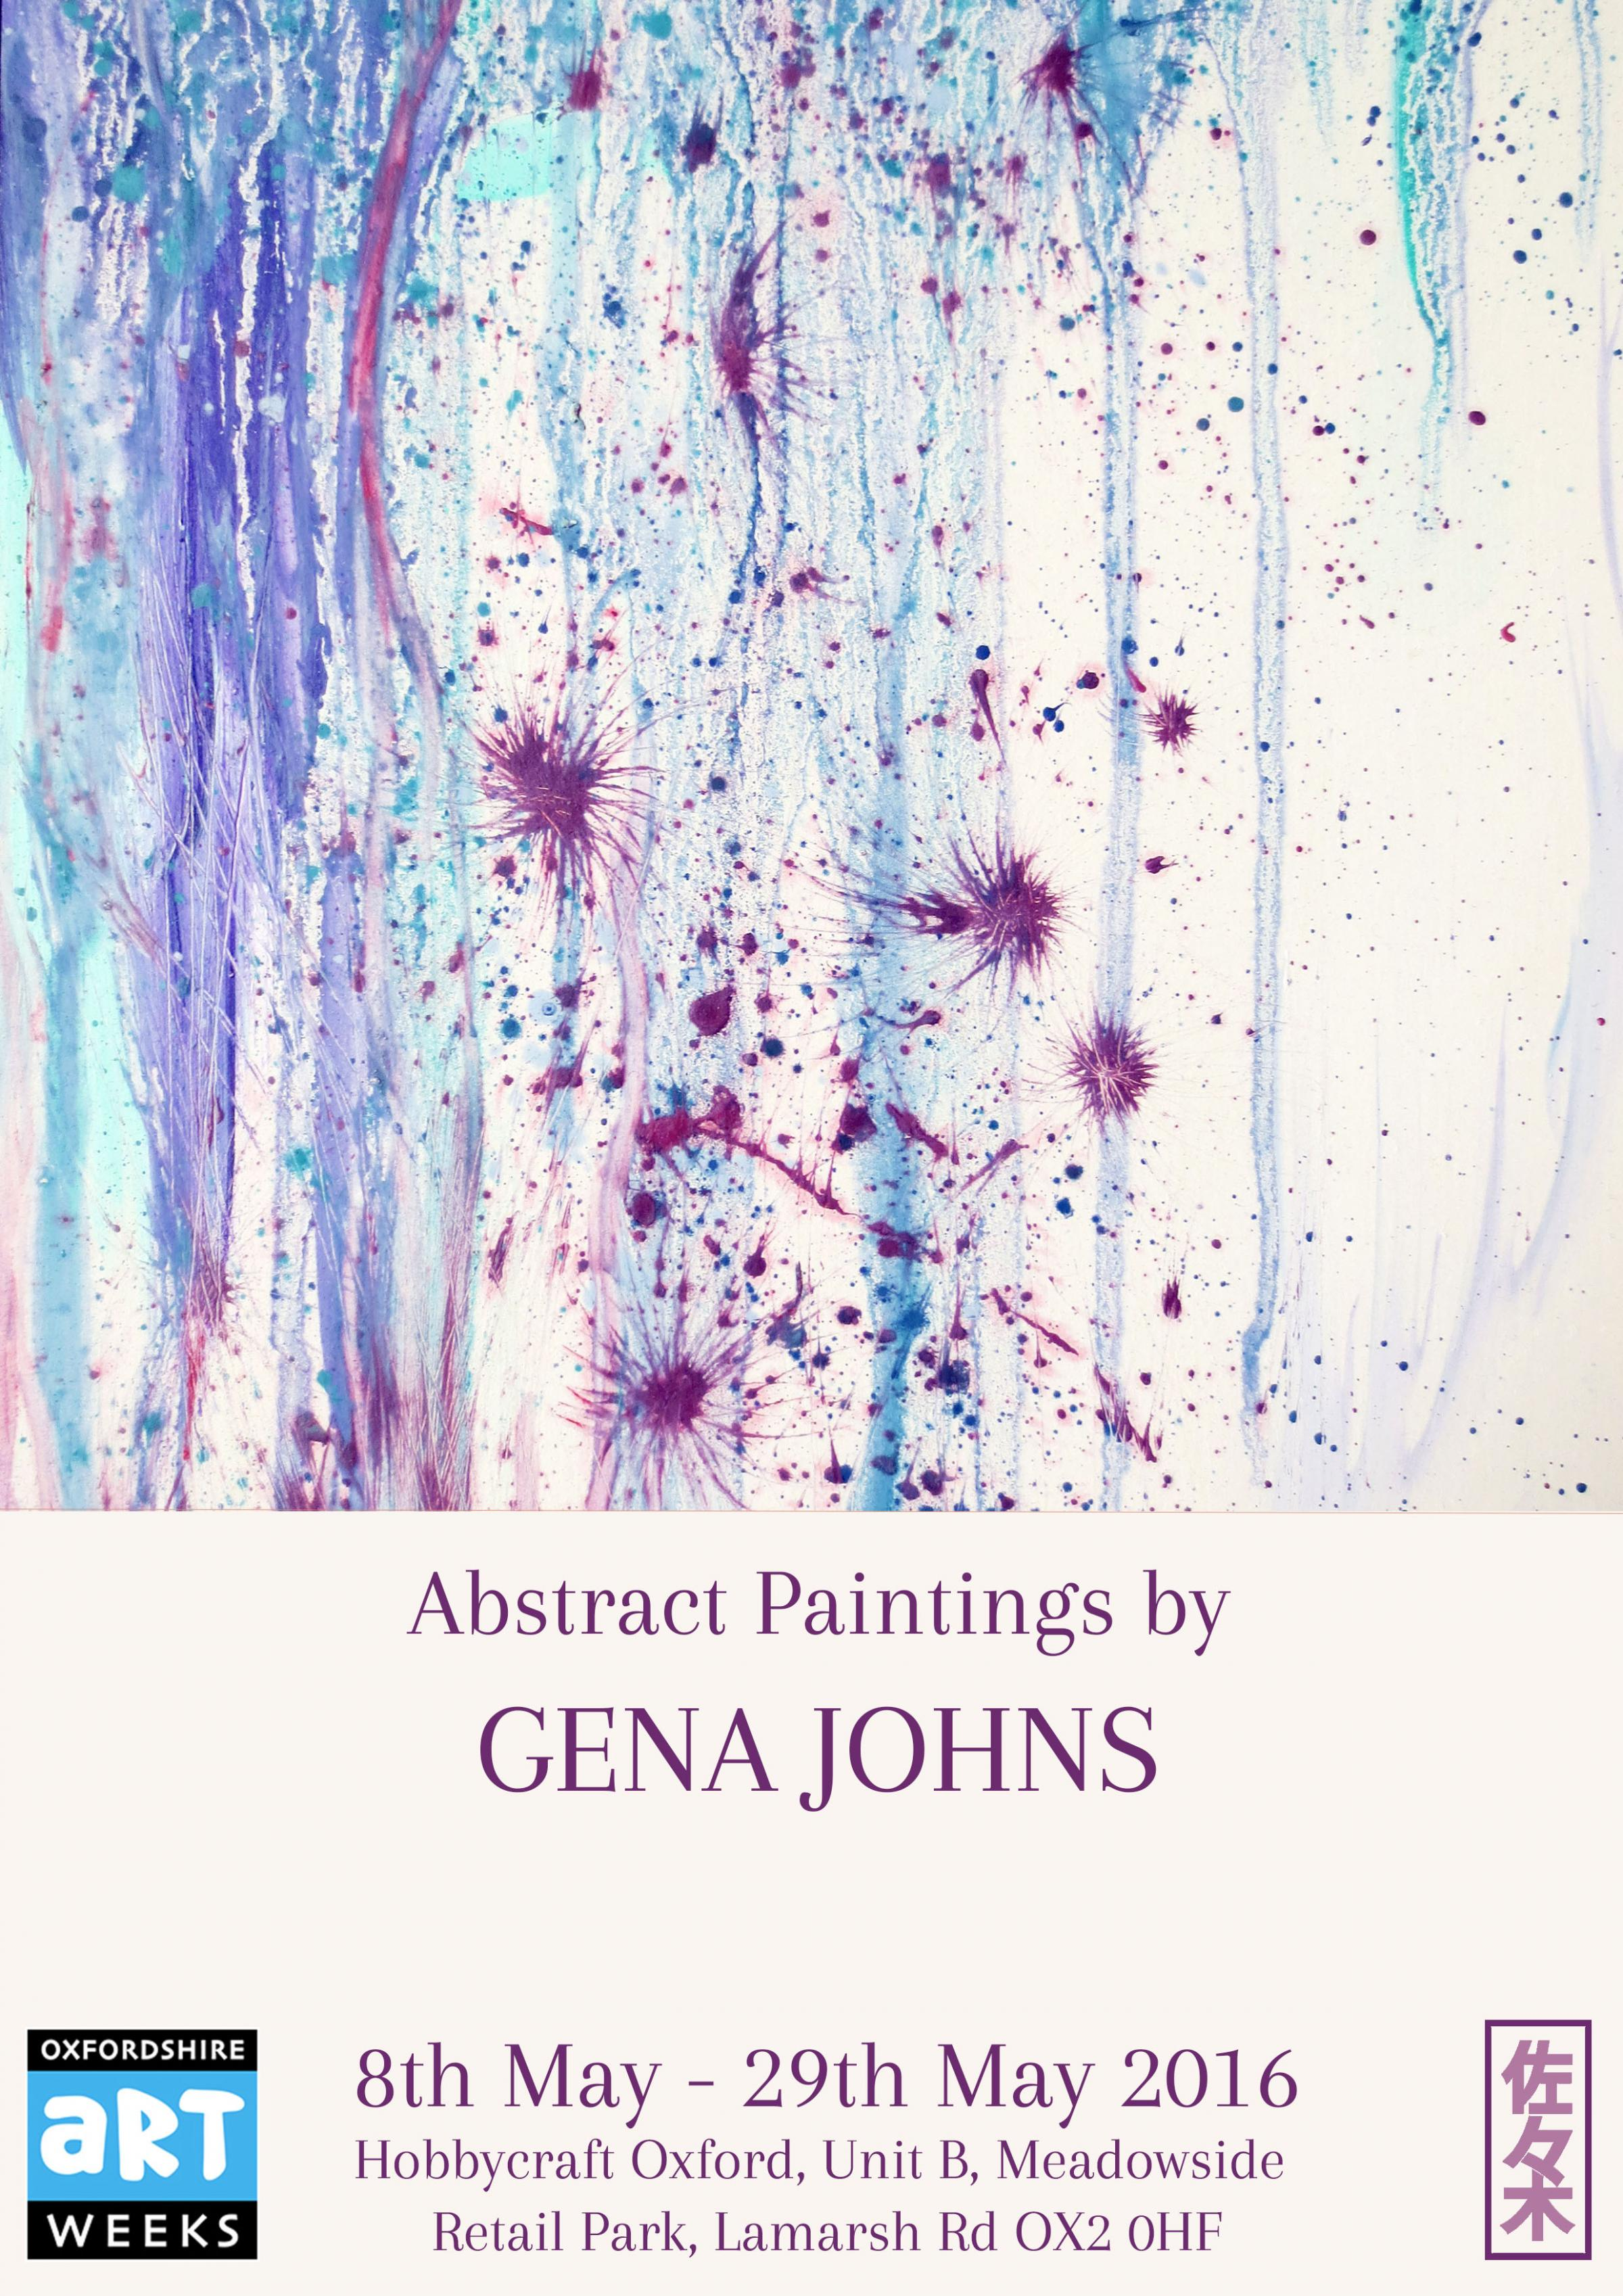 Abstract Paintings by Gena Johns